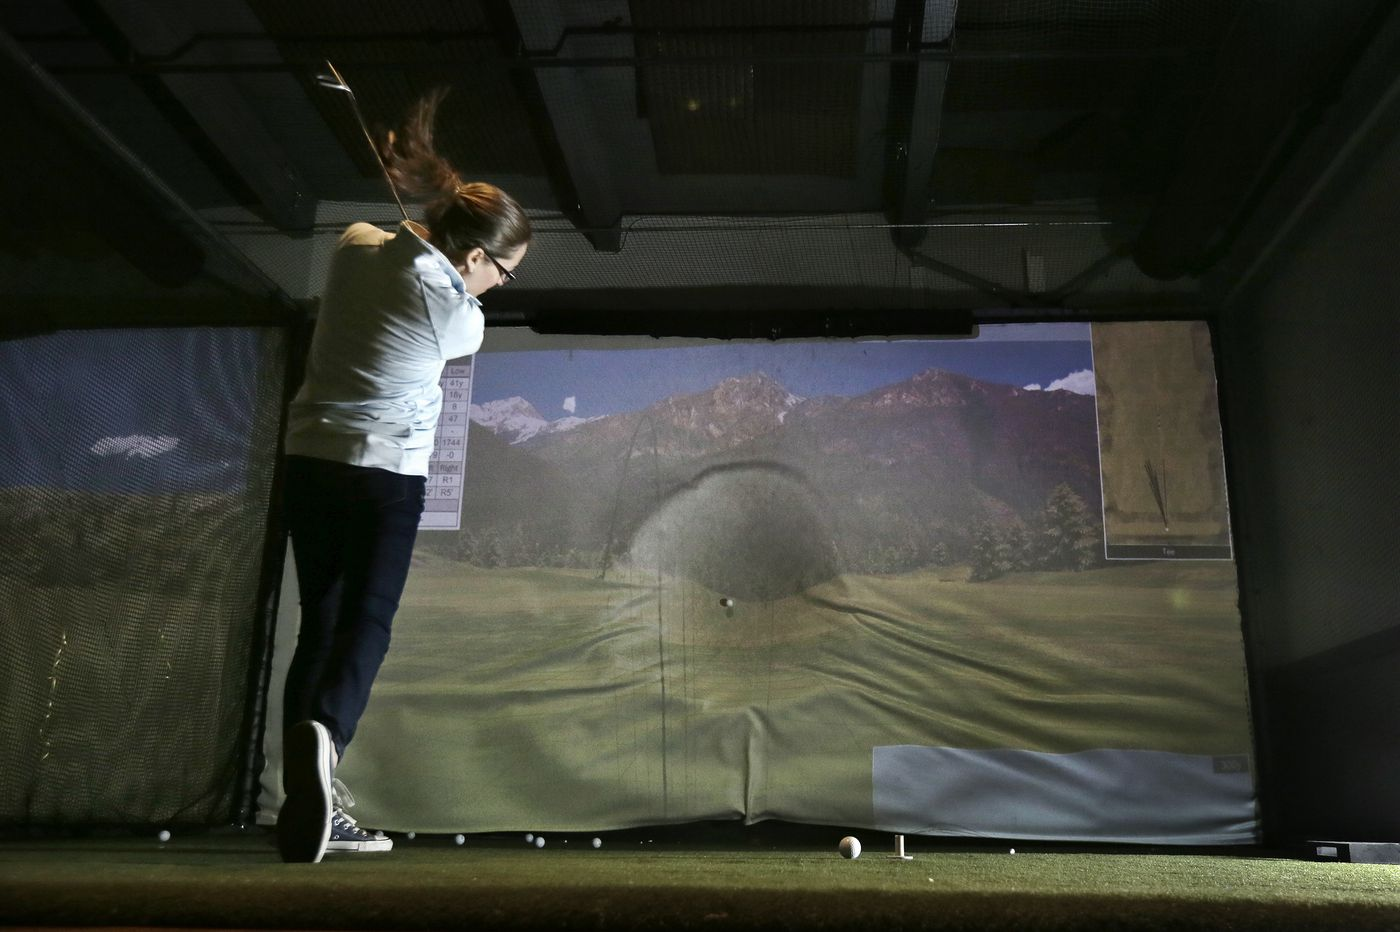 Philly golfers can hit the links indoors, over wings and beer